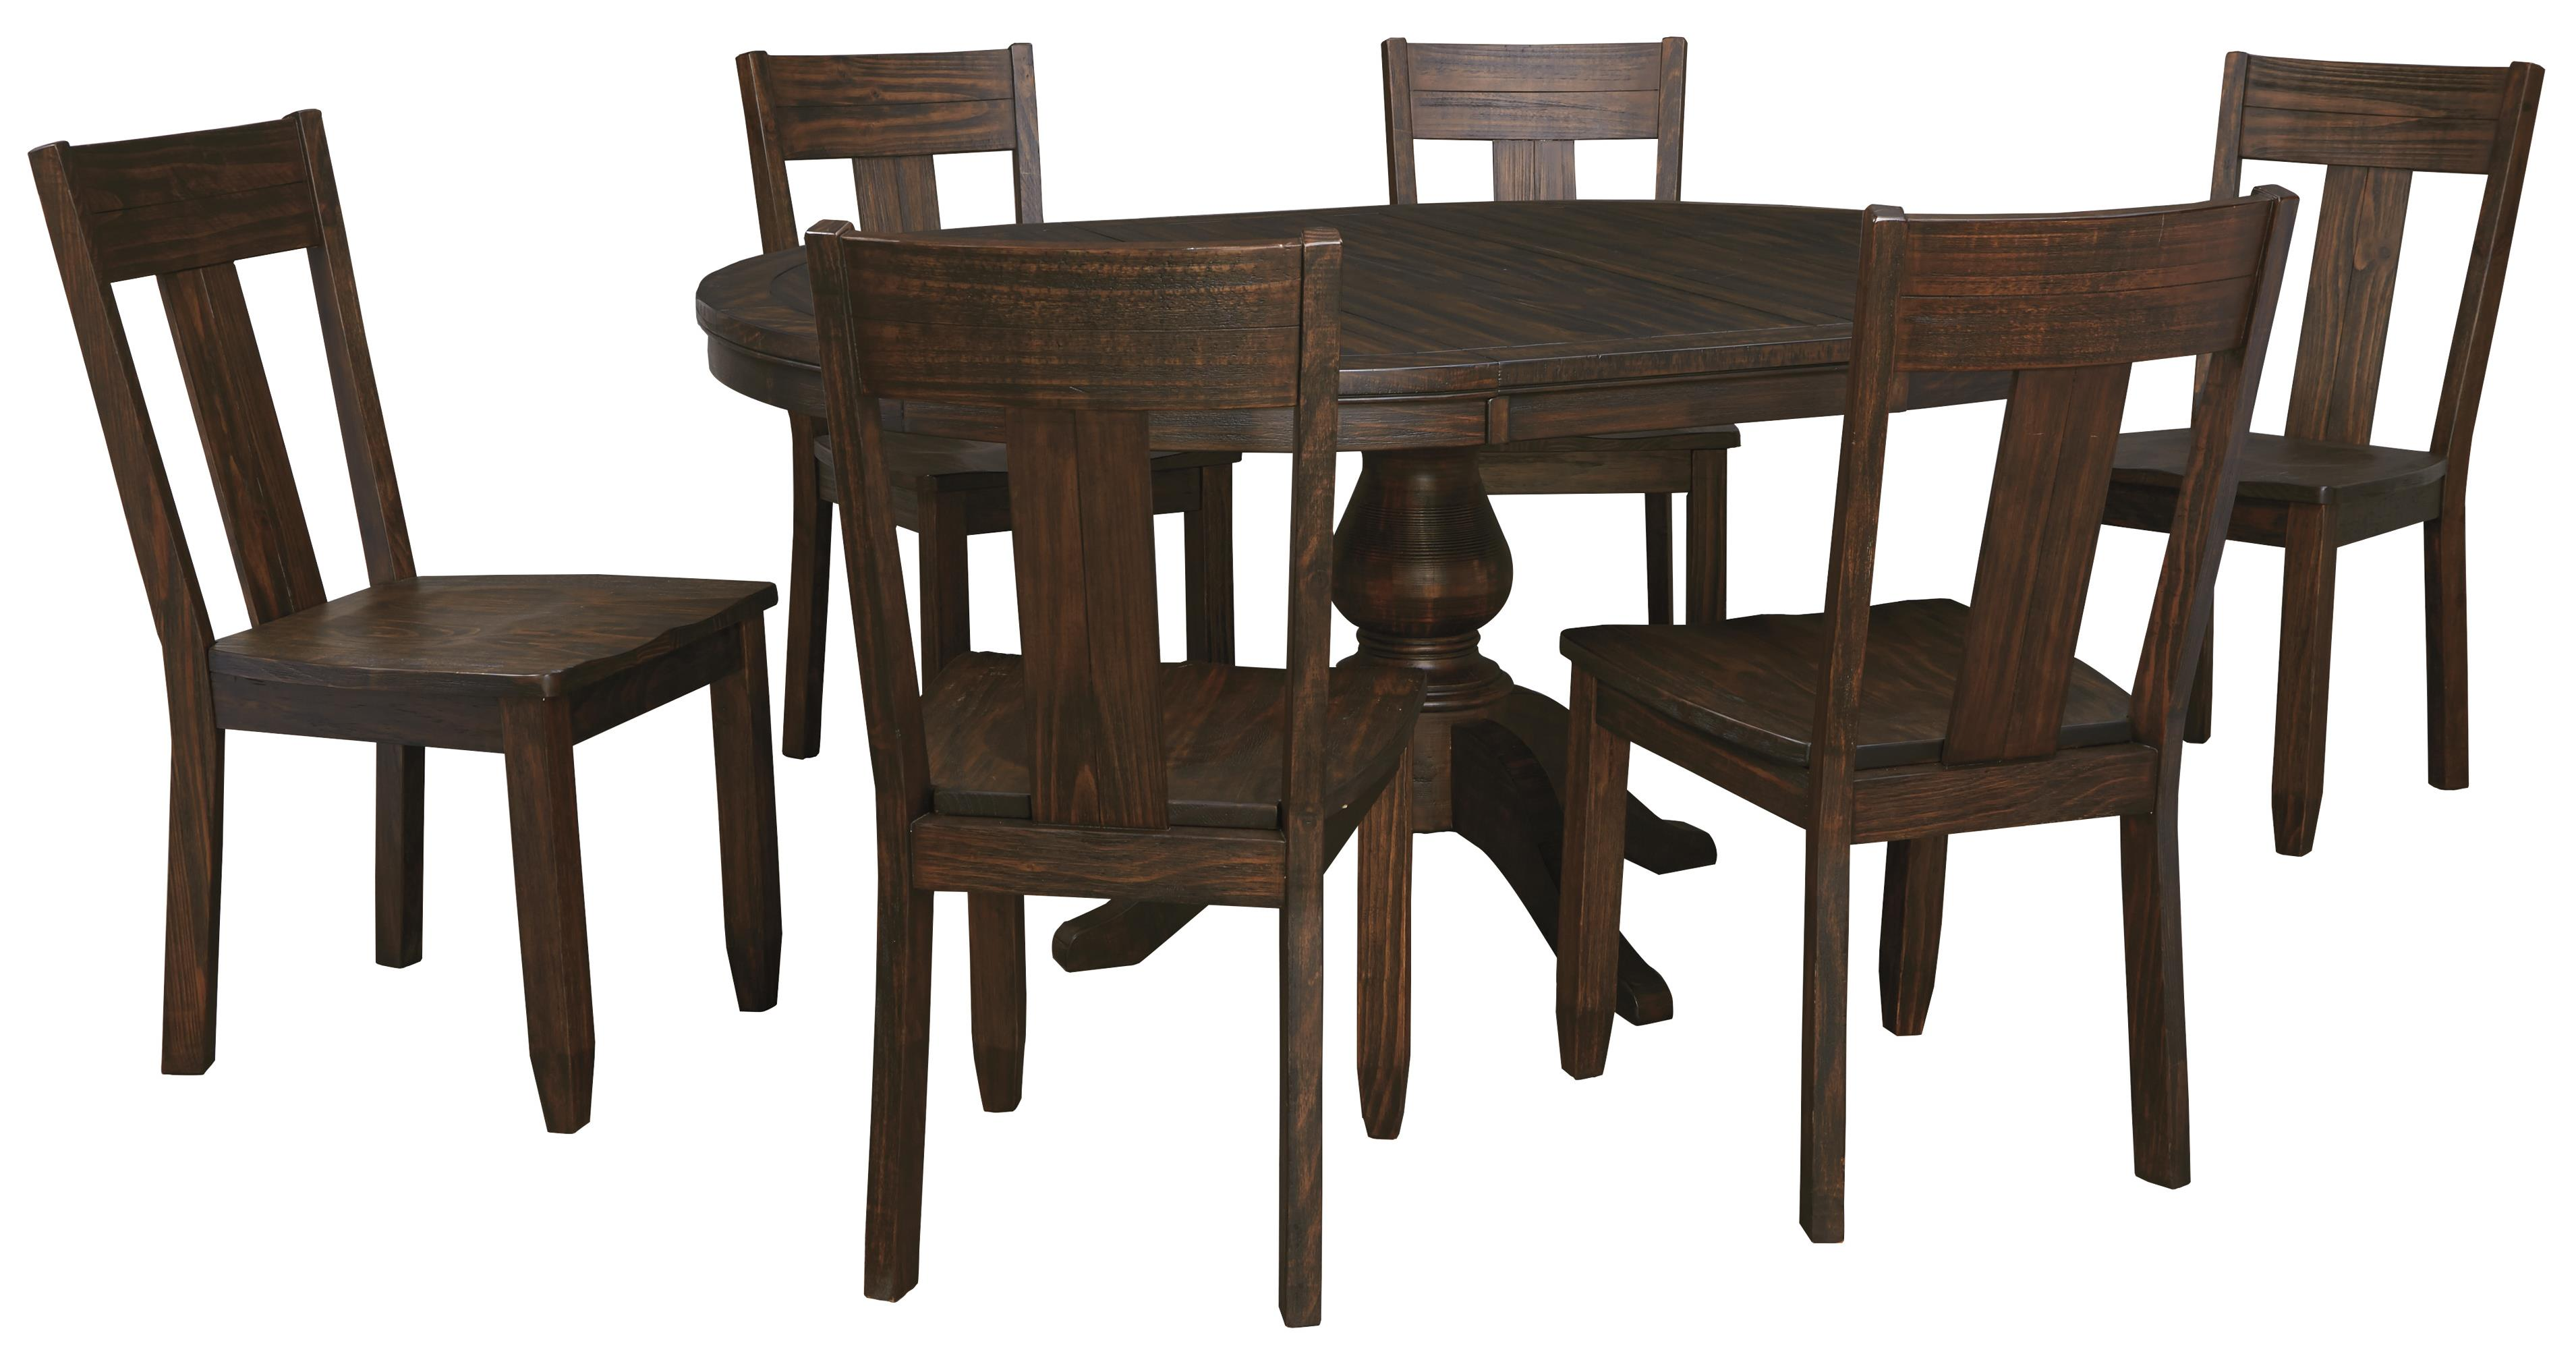 7 piece oval dining table set with wood seat side chairs by signature design by ashley wolf Dining table and bench set